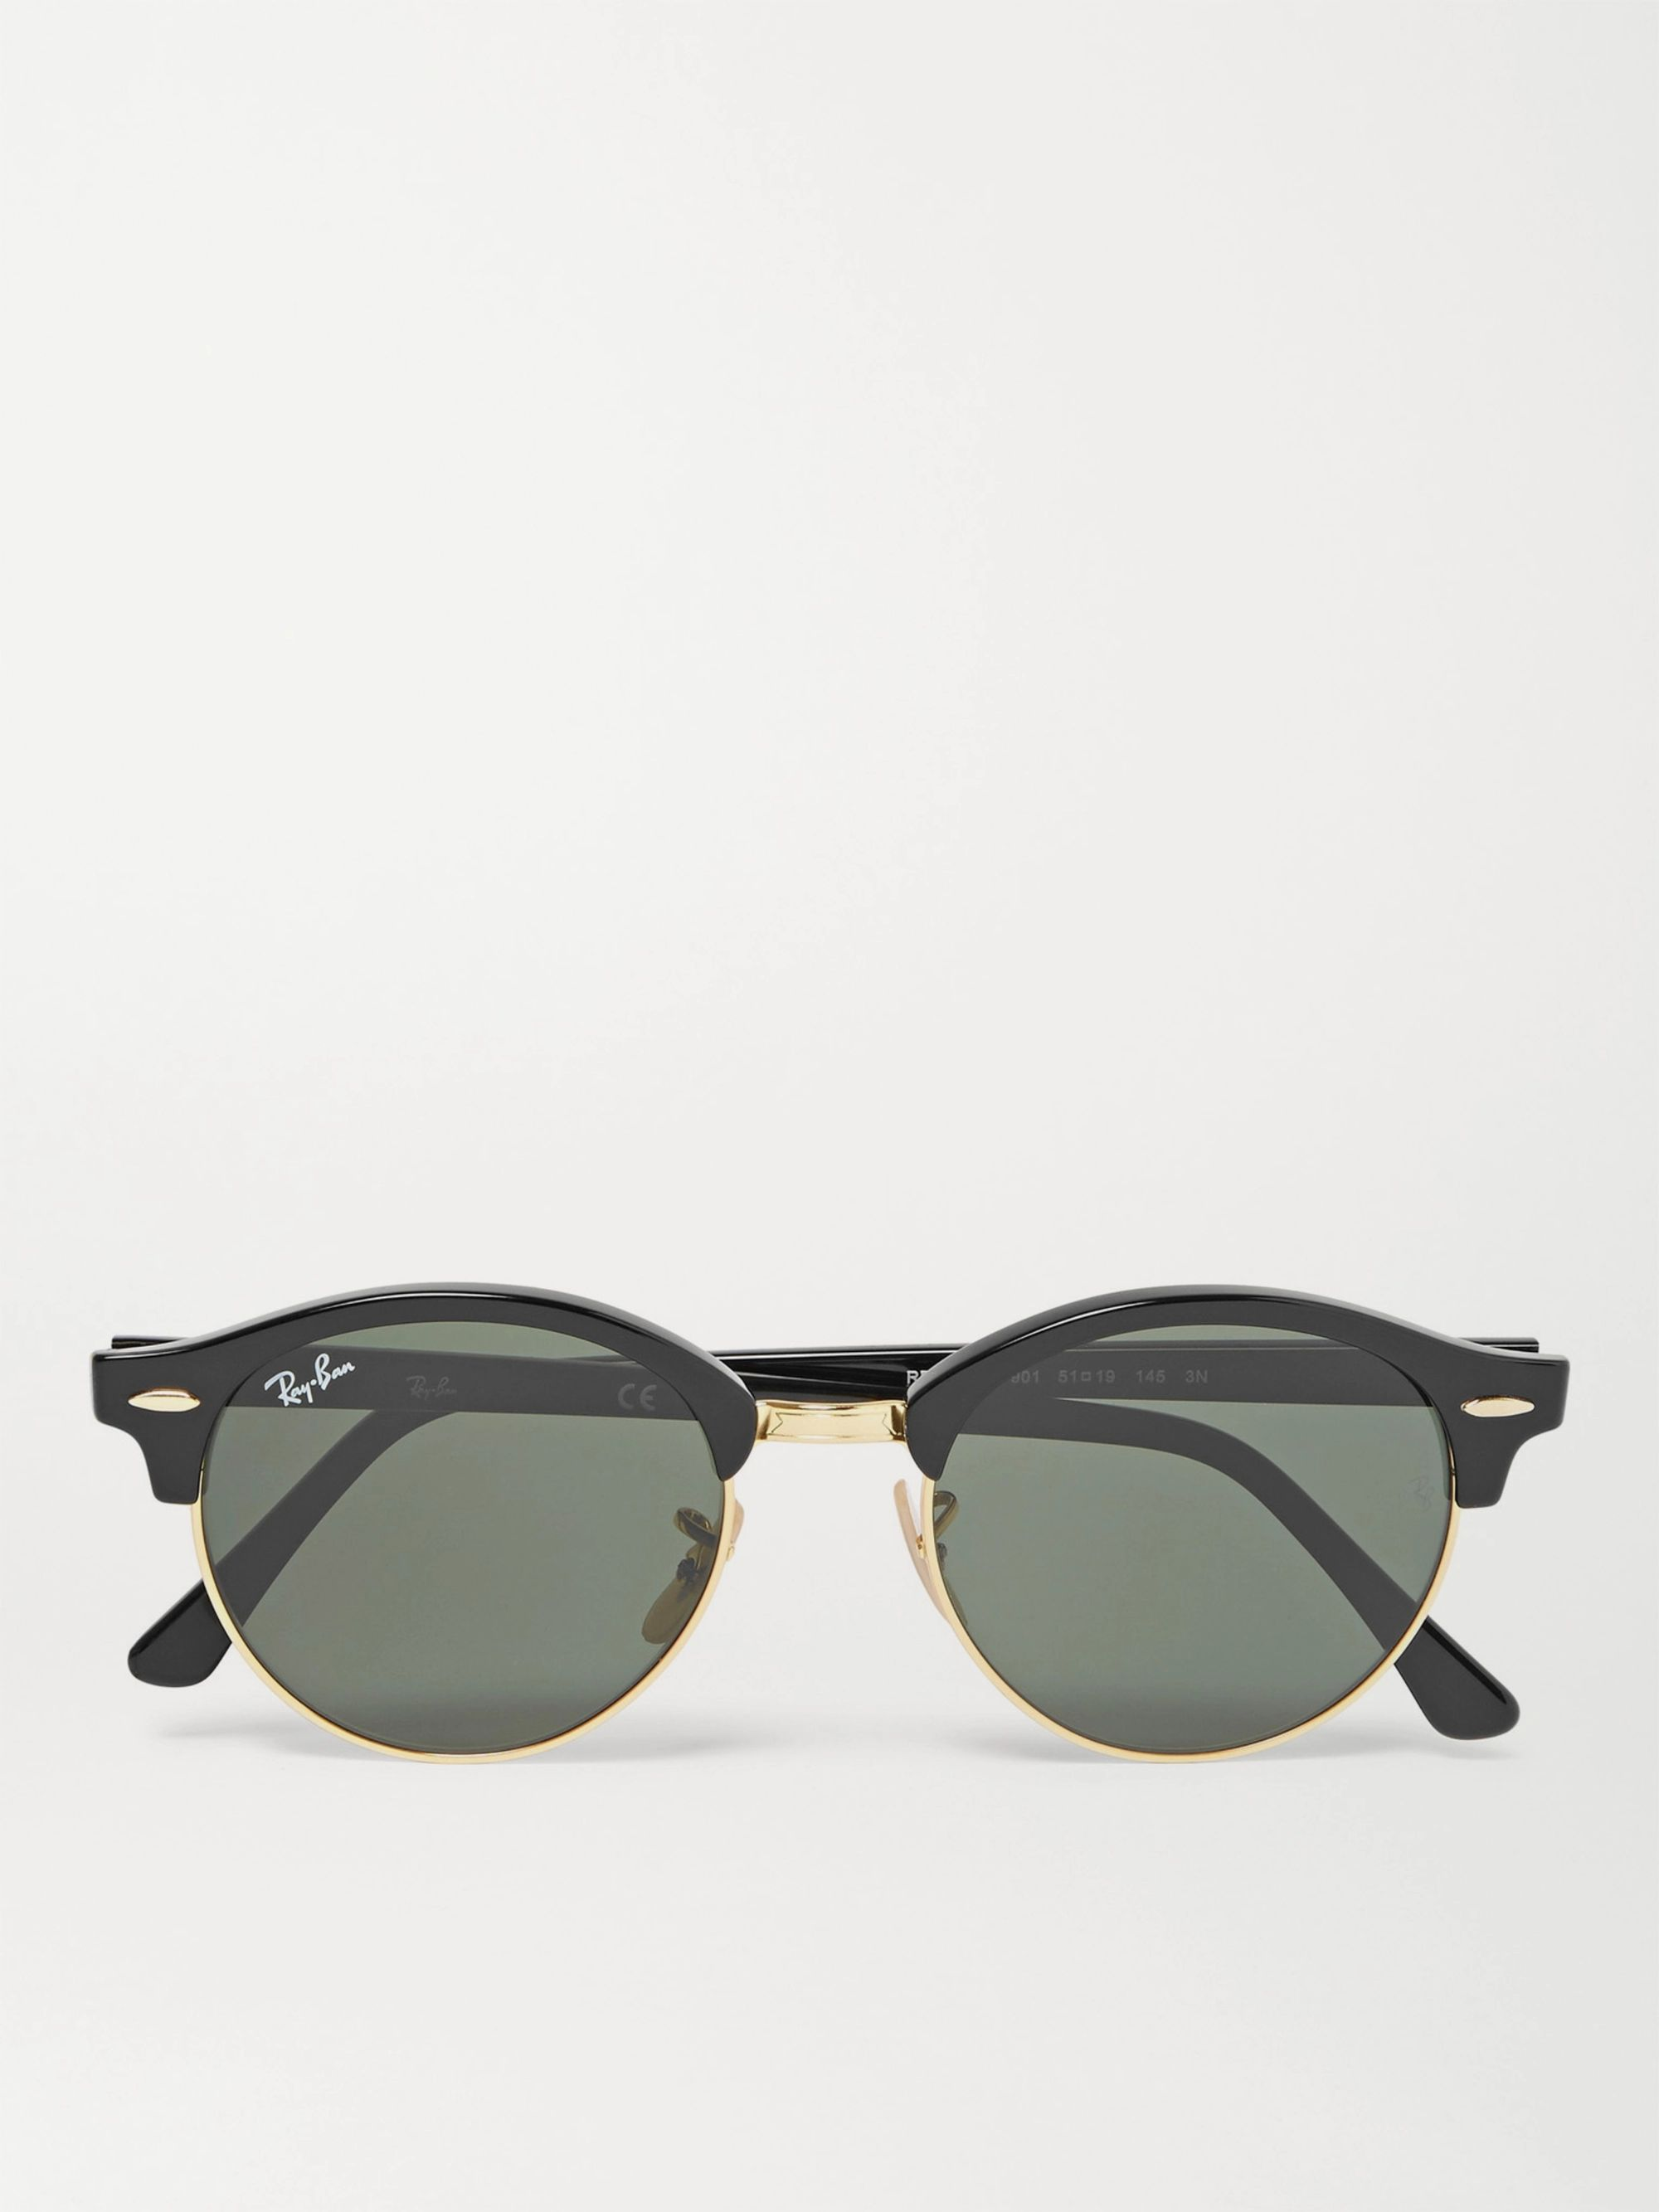 ray ban all black round sunglasses